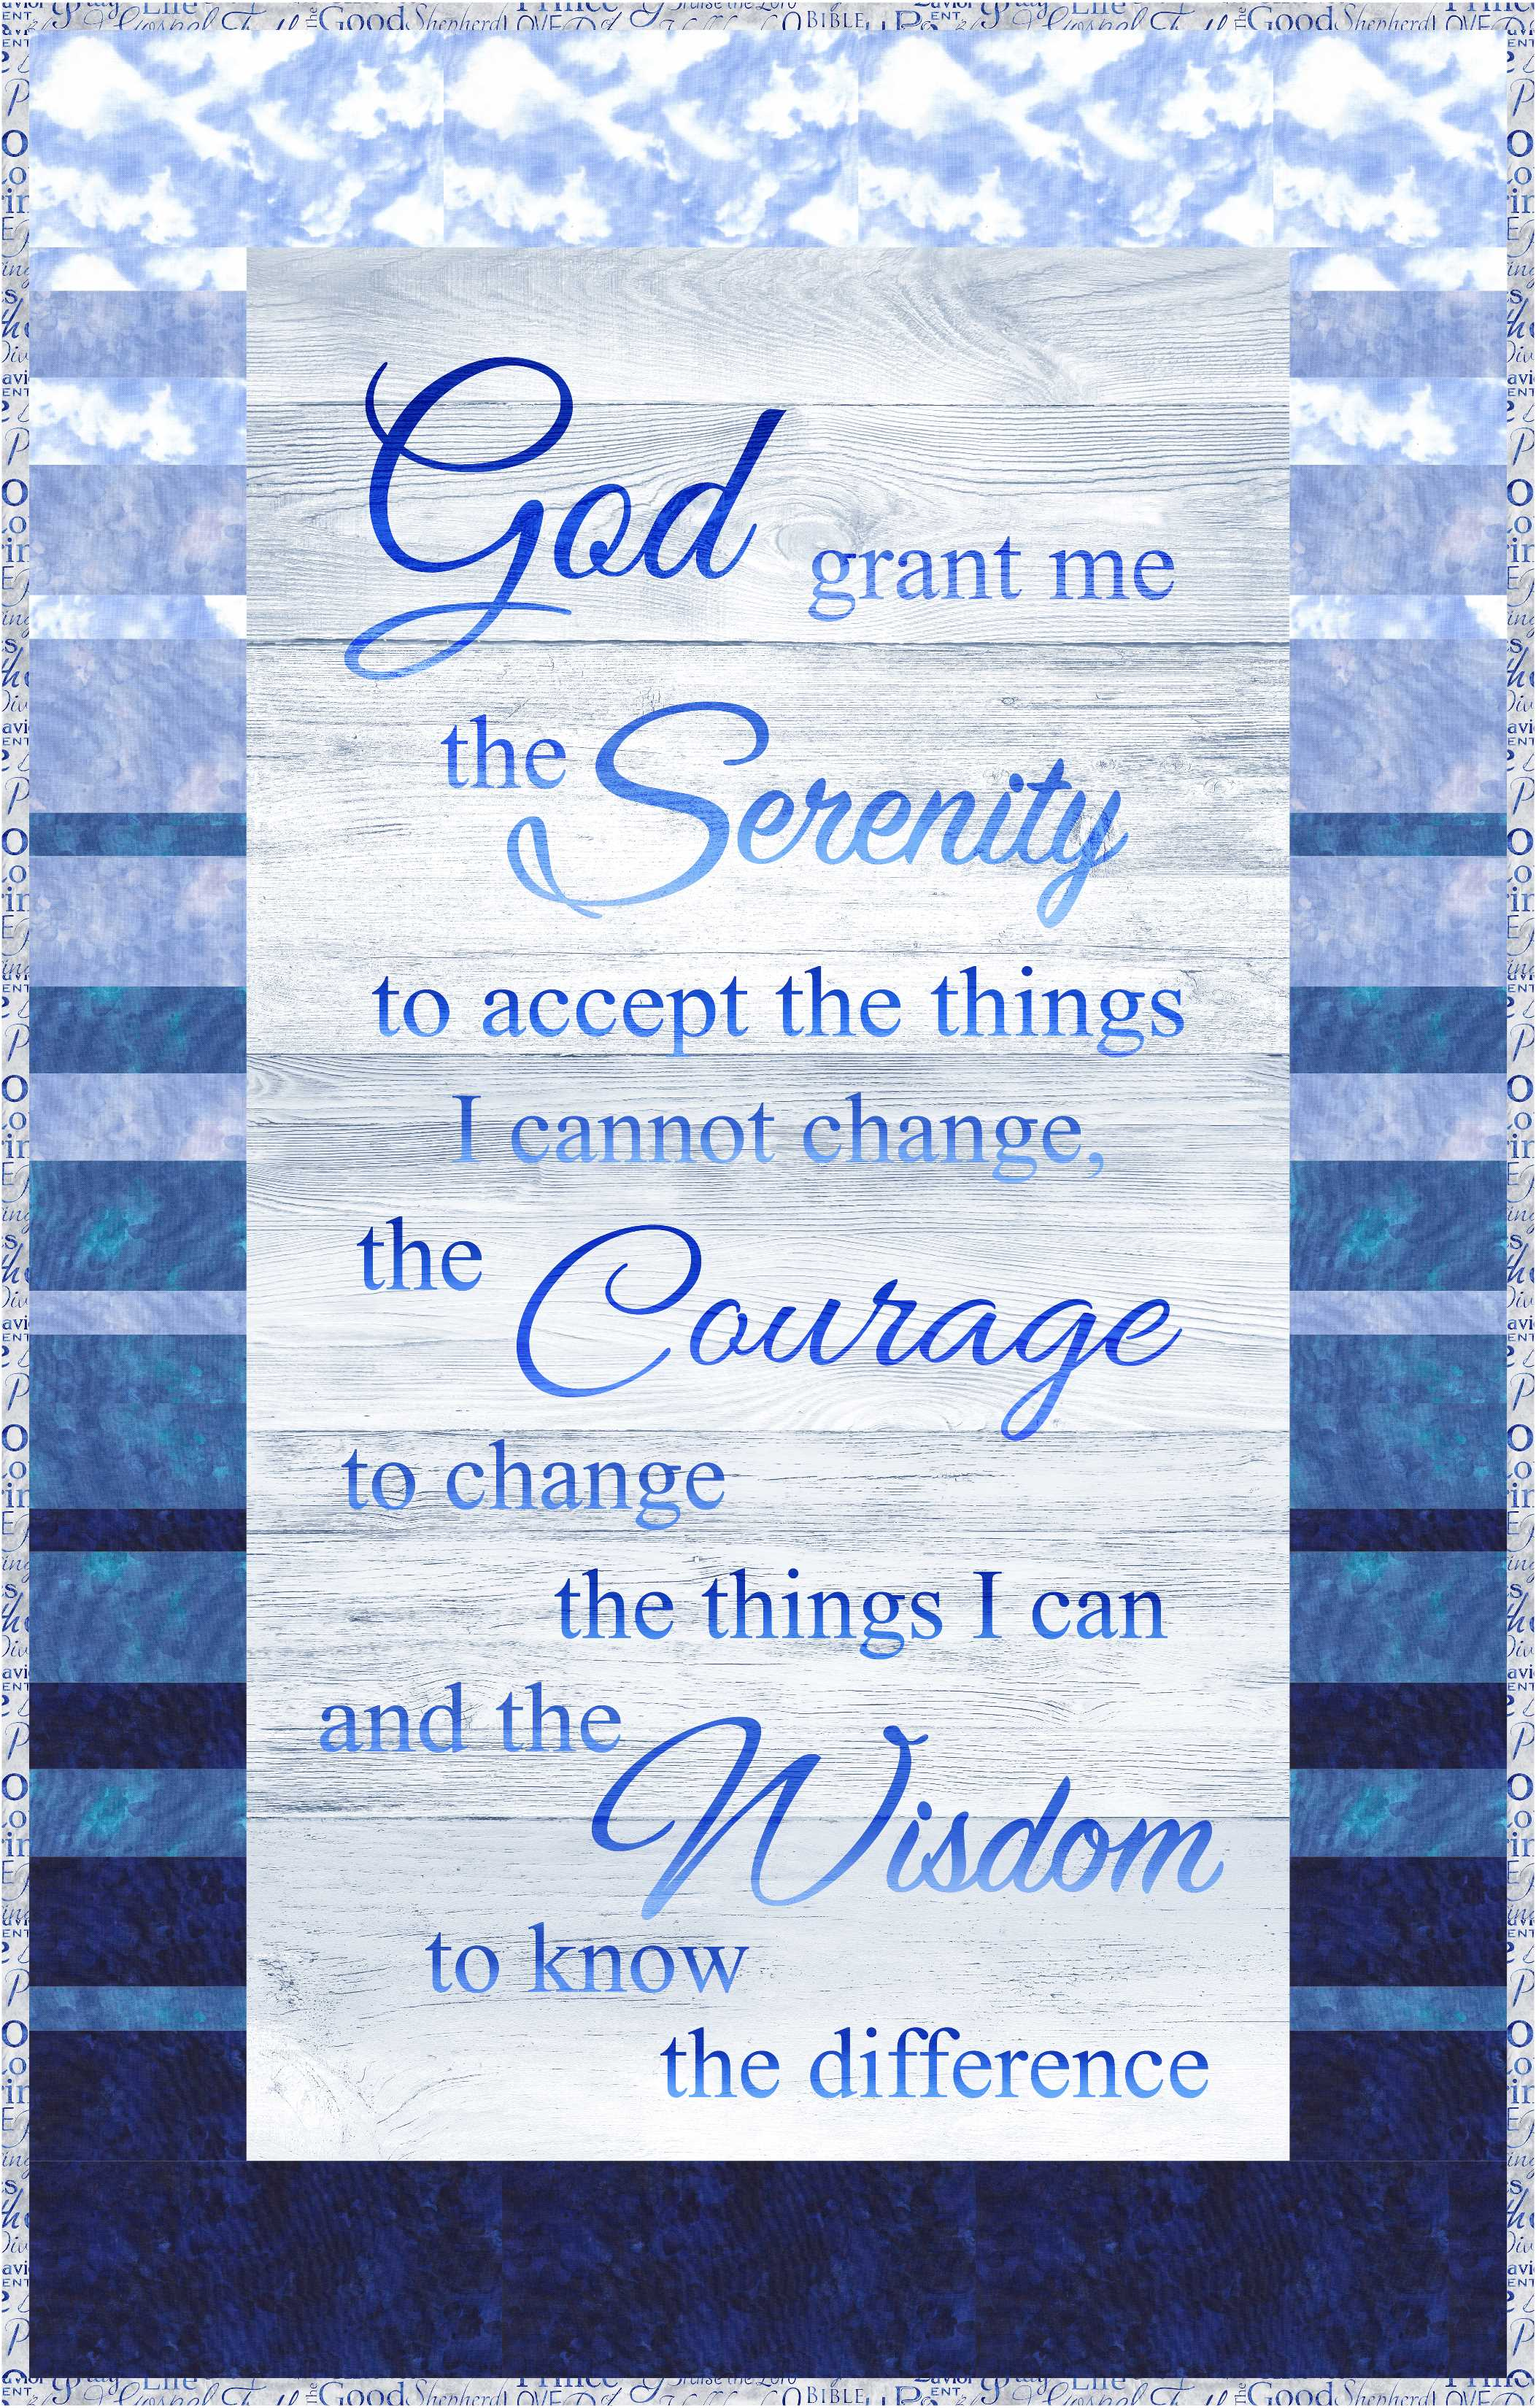 Accepted Serenity 2 34 x 54.JPG